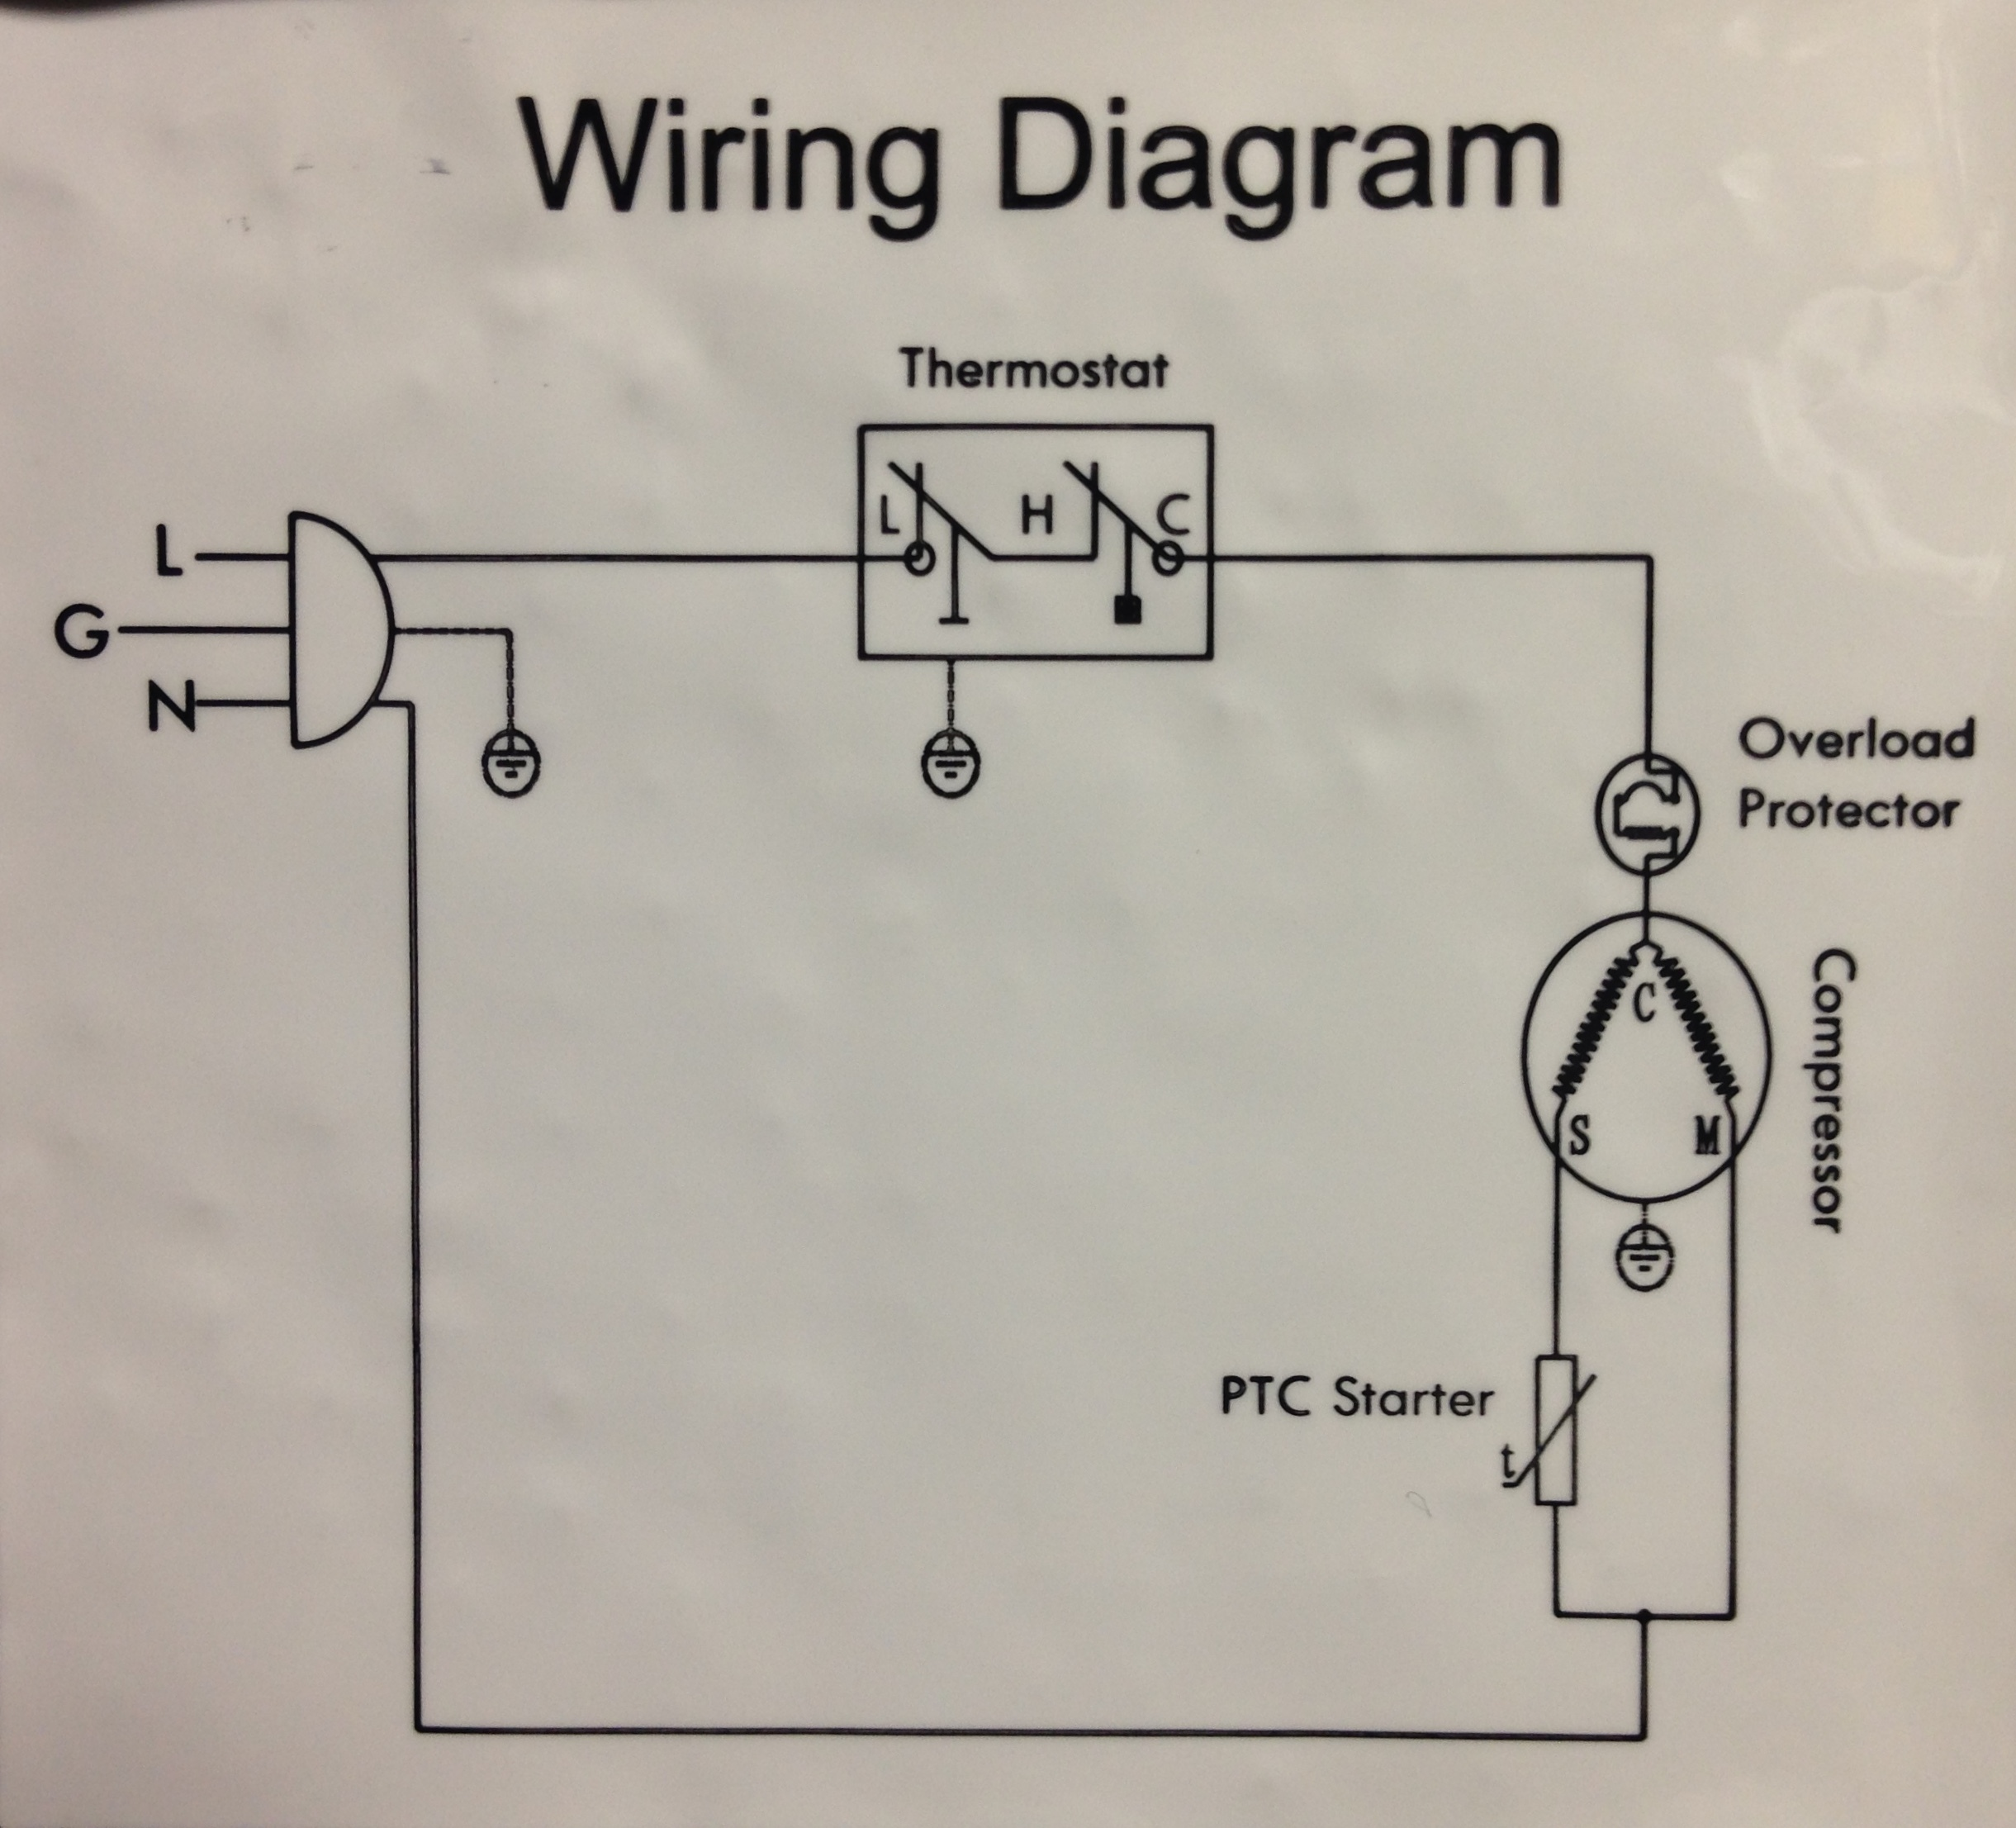 Motor Wiring Diagram Dometic Refrigerator Wiring Diagram Whirlpool